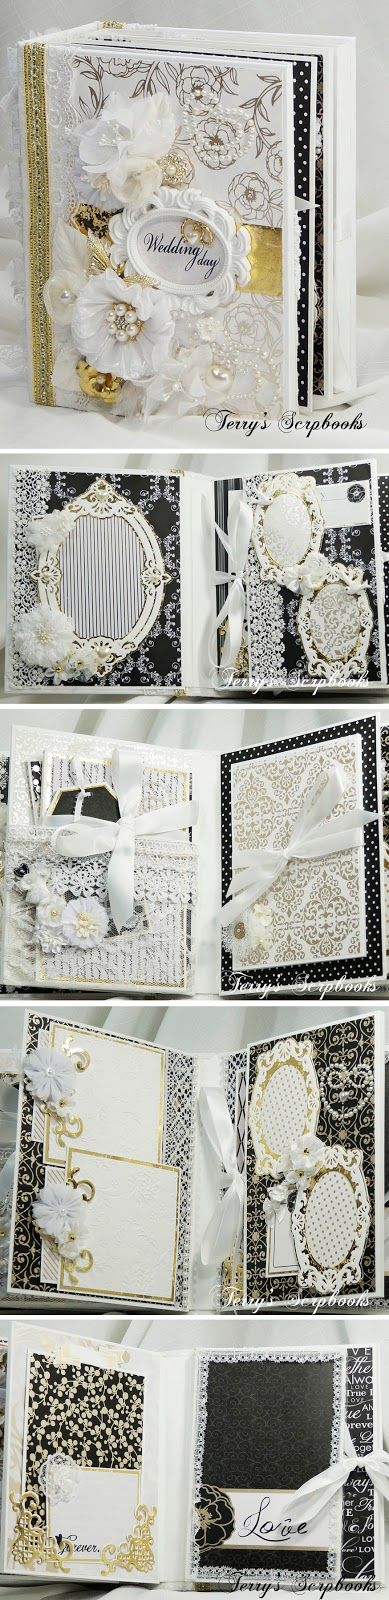 Terry's Scrapbooks: Die Cuts With A View ( DCWV ) Everlasting Love Wedding Mini scrapbook album